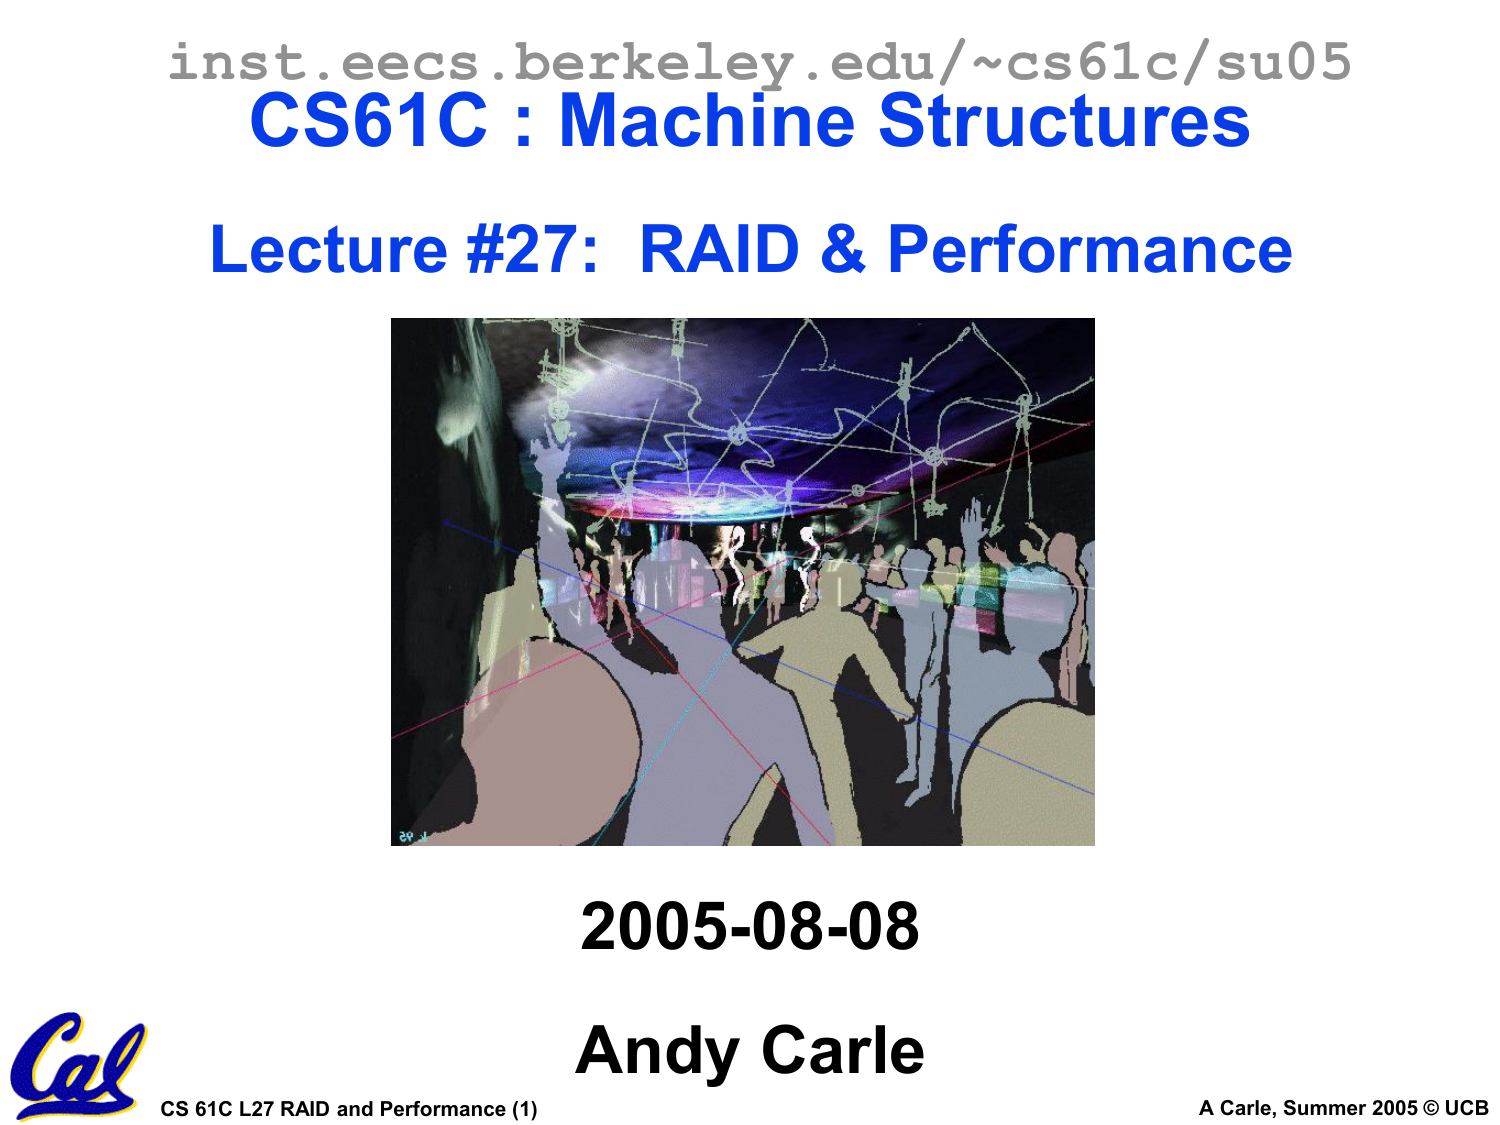 CS61C : Machine Structures Lecture #27: RAID & Performance 2005-08